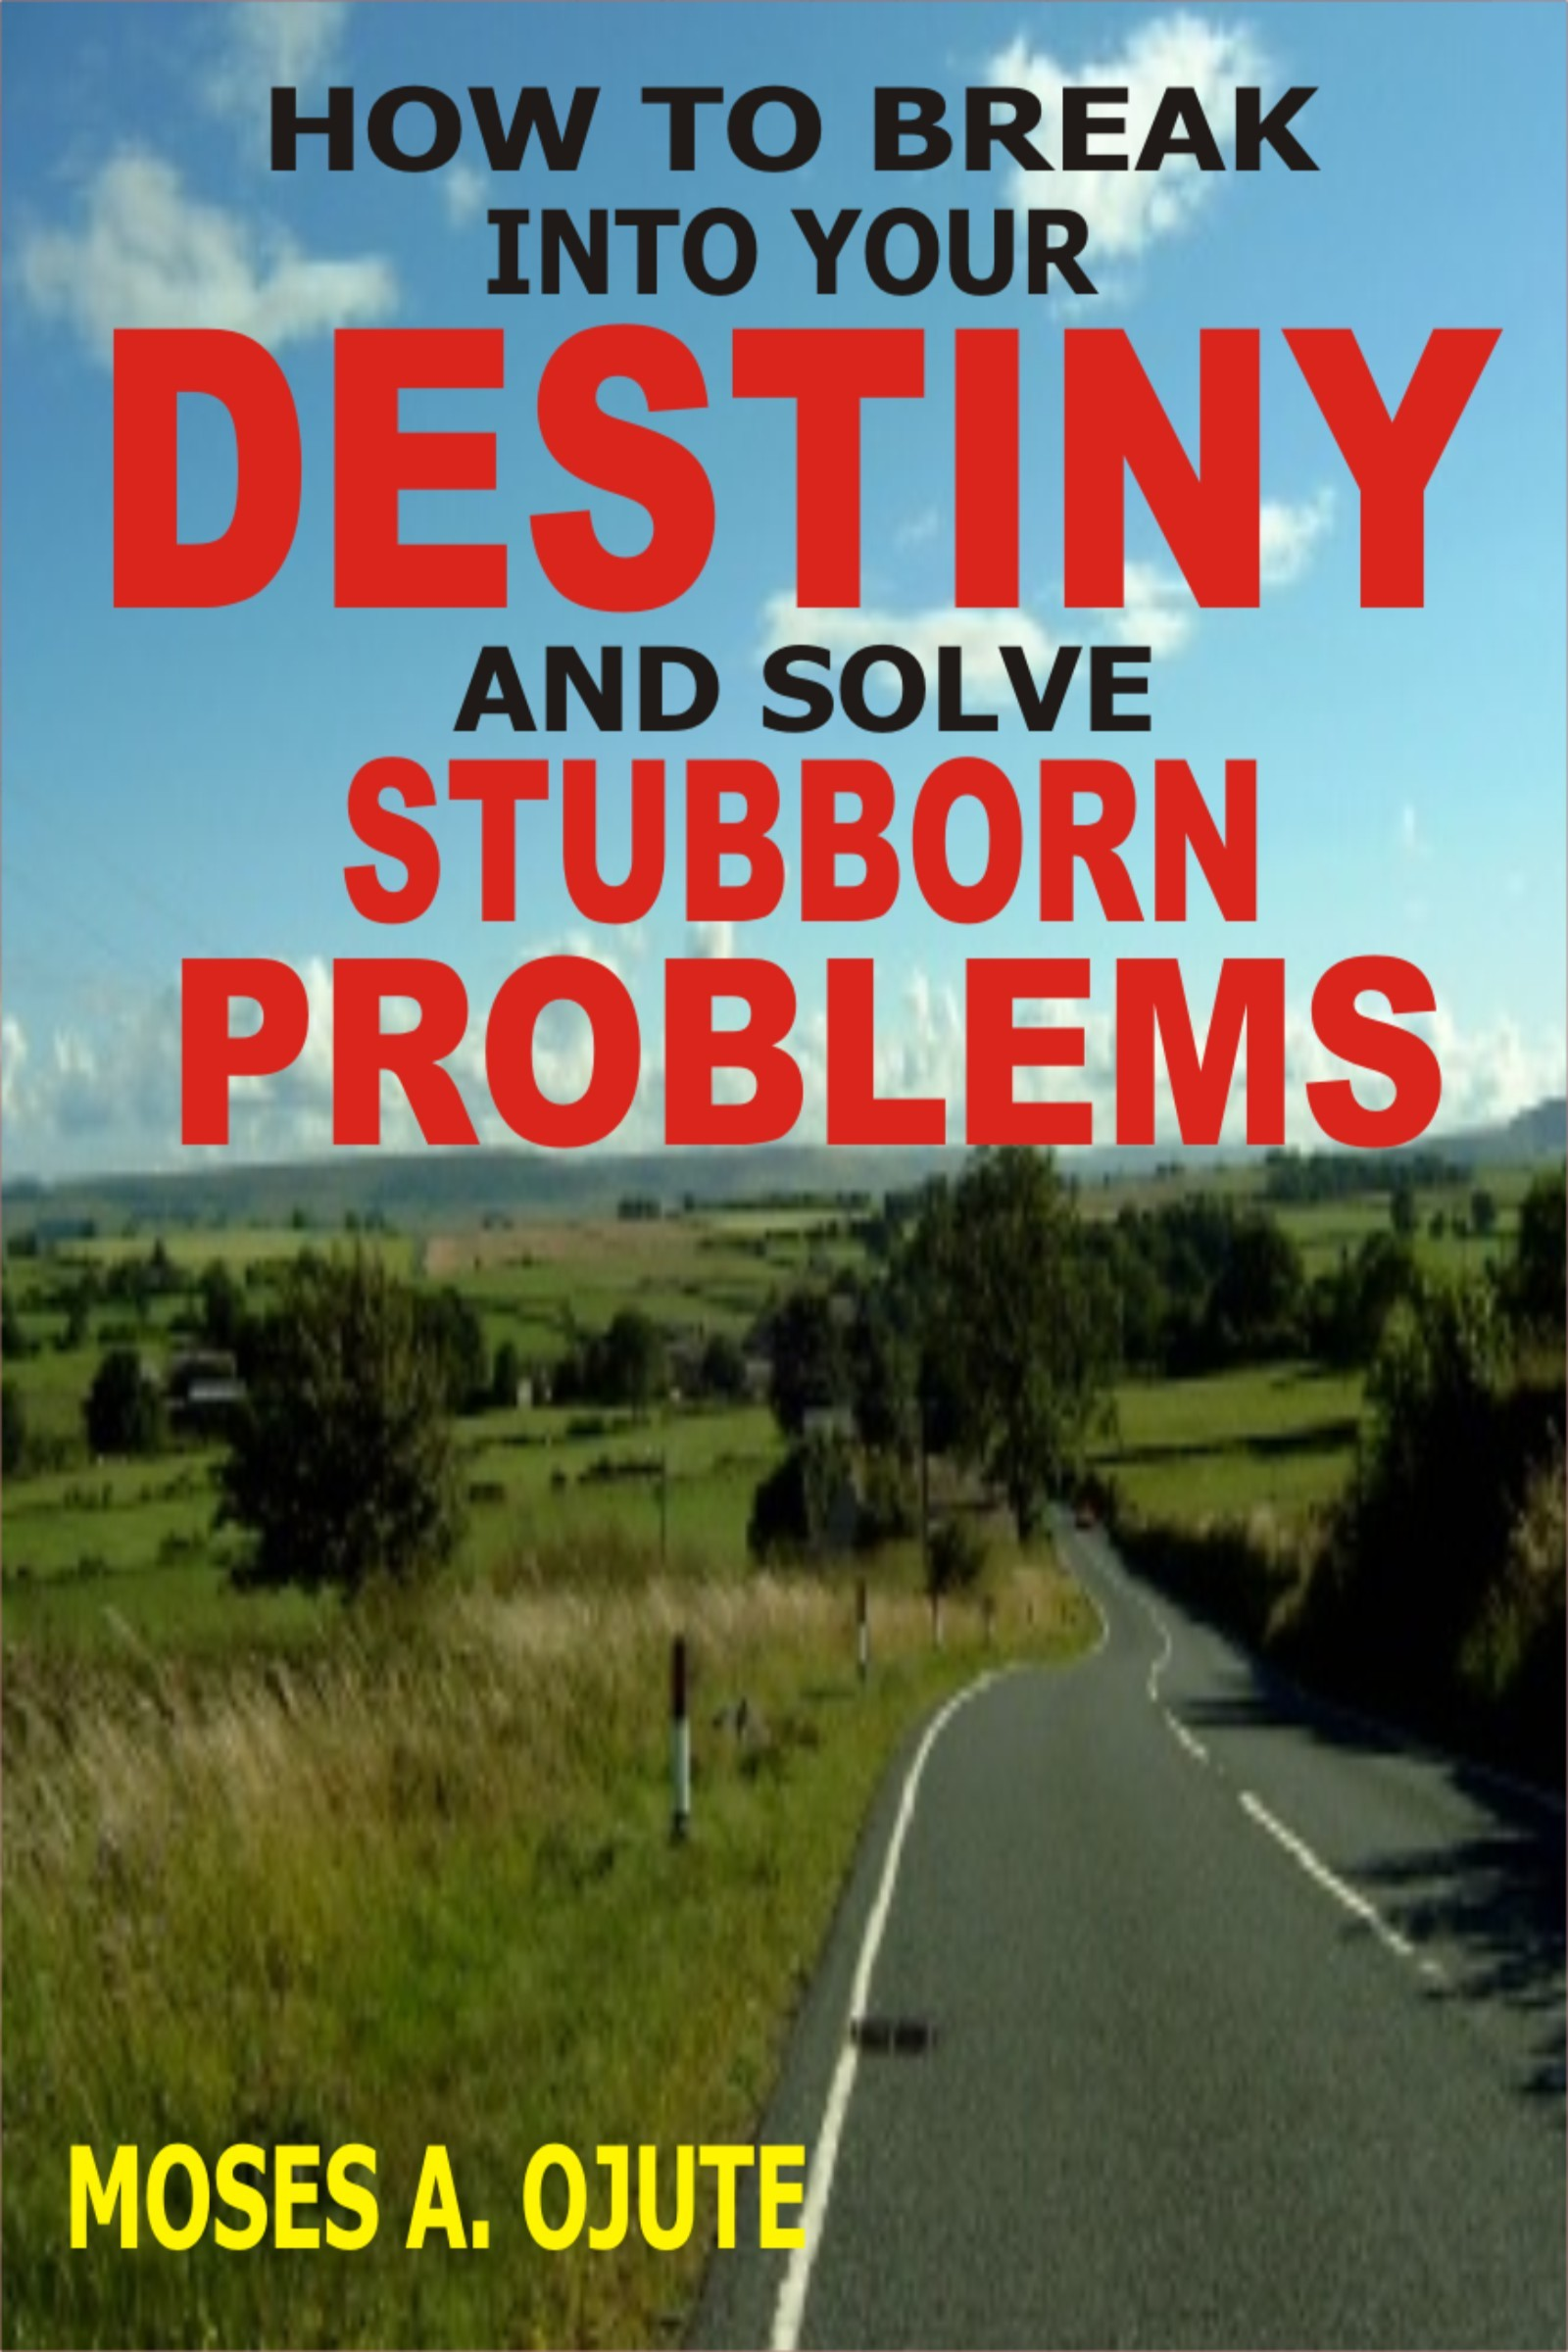 How To Break Into Your Destiny And Solve Stubborn Problems